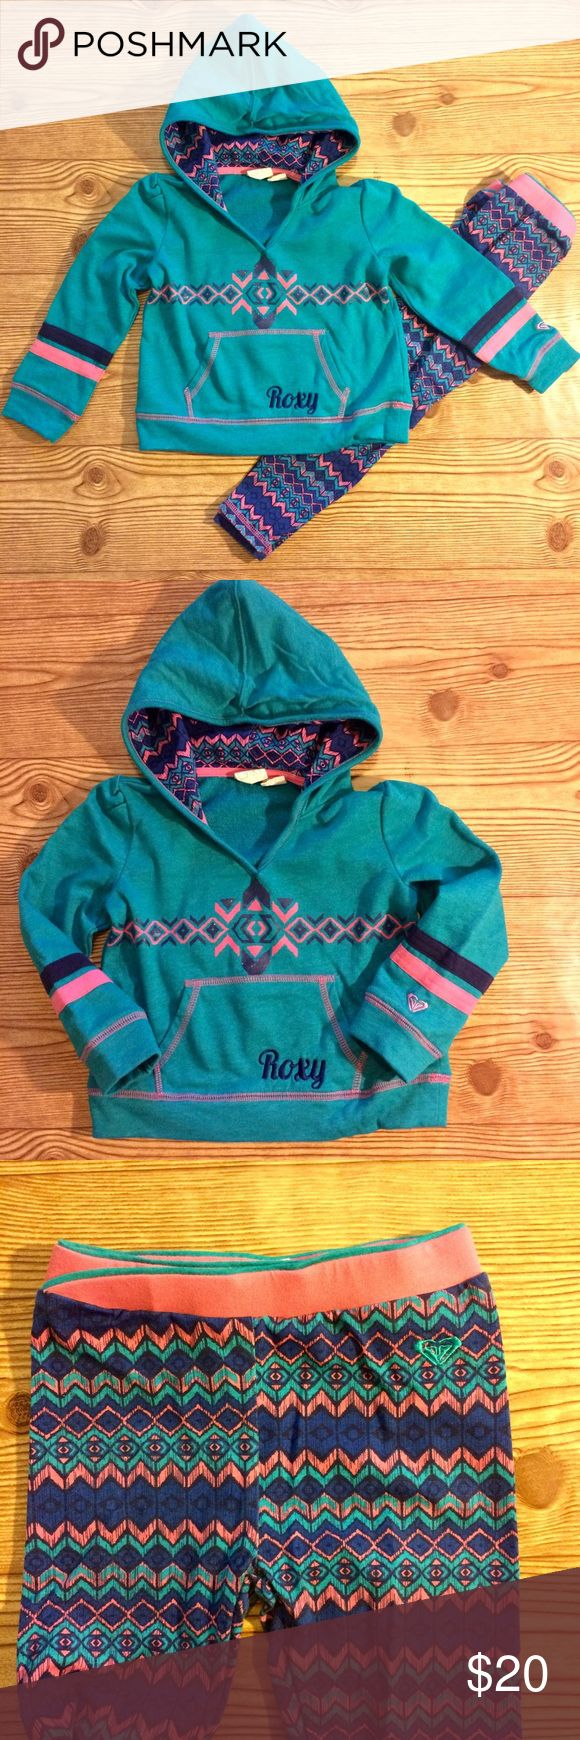 Roxy 2-piece Matching Hoodie and Legging Set Sweater with hood and legging set. Cotton blend. Embroidered ROXY on the front pocket. Elastic waist band on leggings with Roxy logo embroidered. Lining on Hoodie matches the leggings. EUC. Roxy Matching Sets